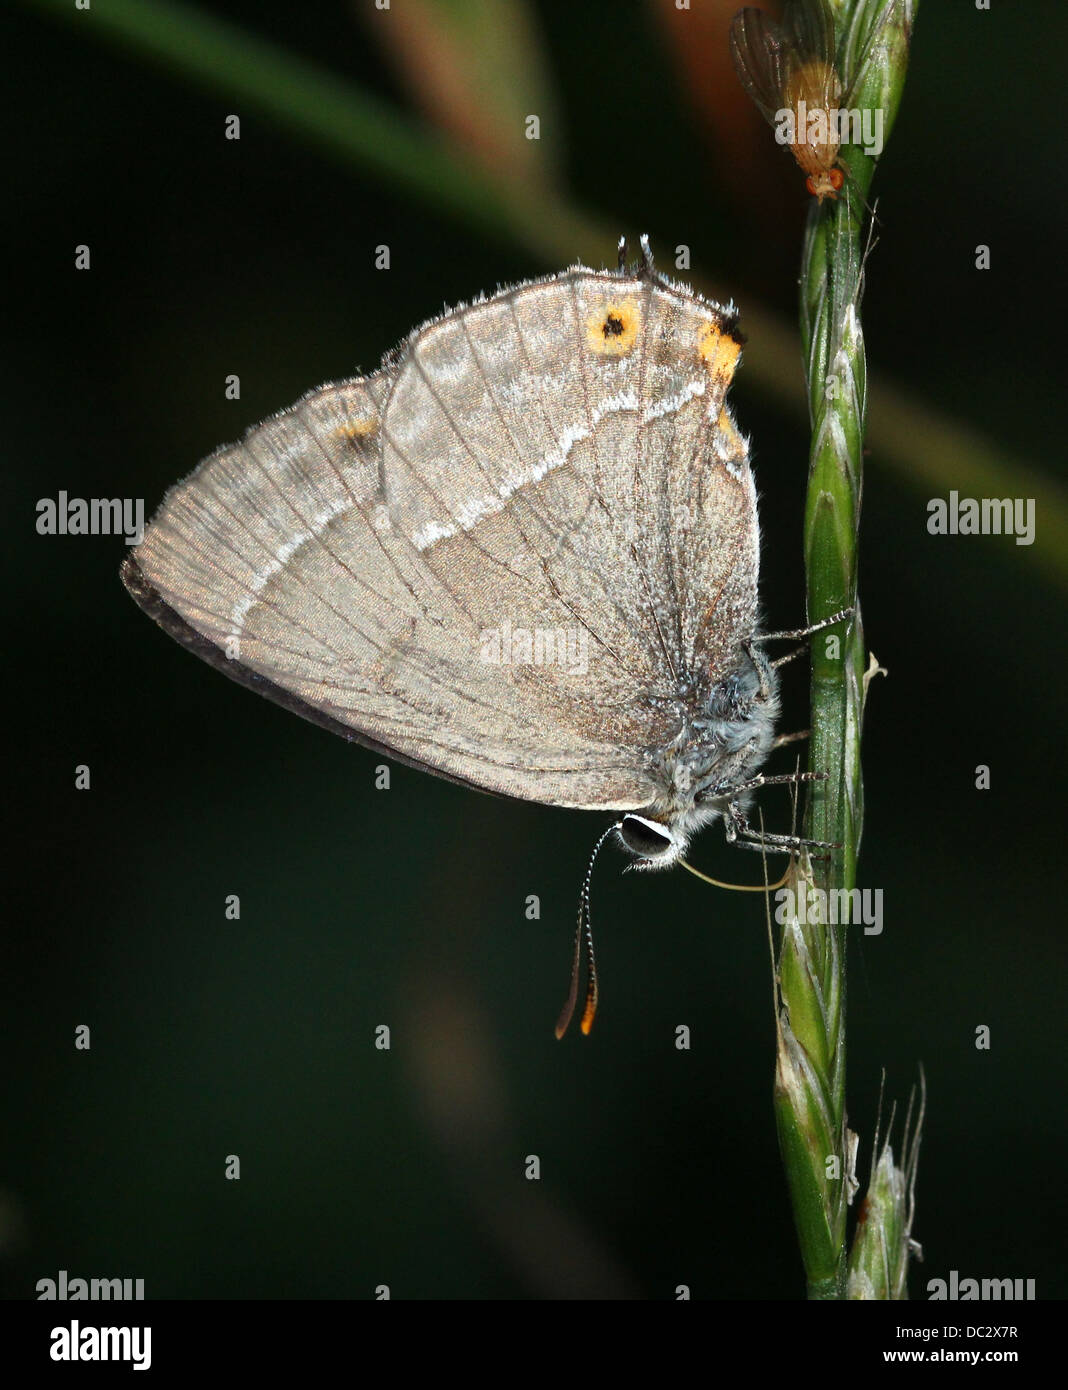 Purple Hairstreak Butterfly (Favonius quercus) posing with wings closed - Stock Image